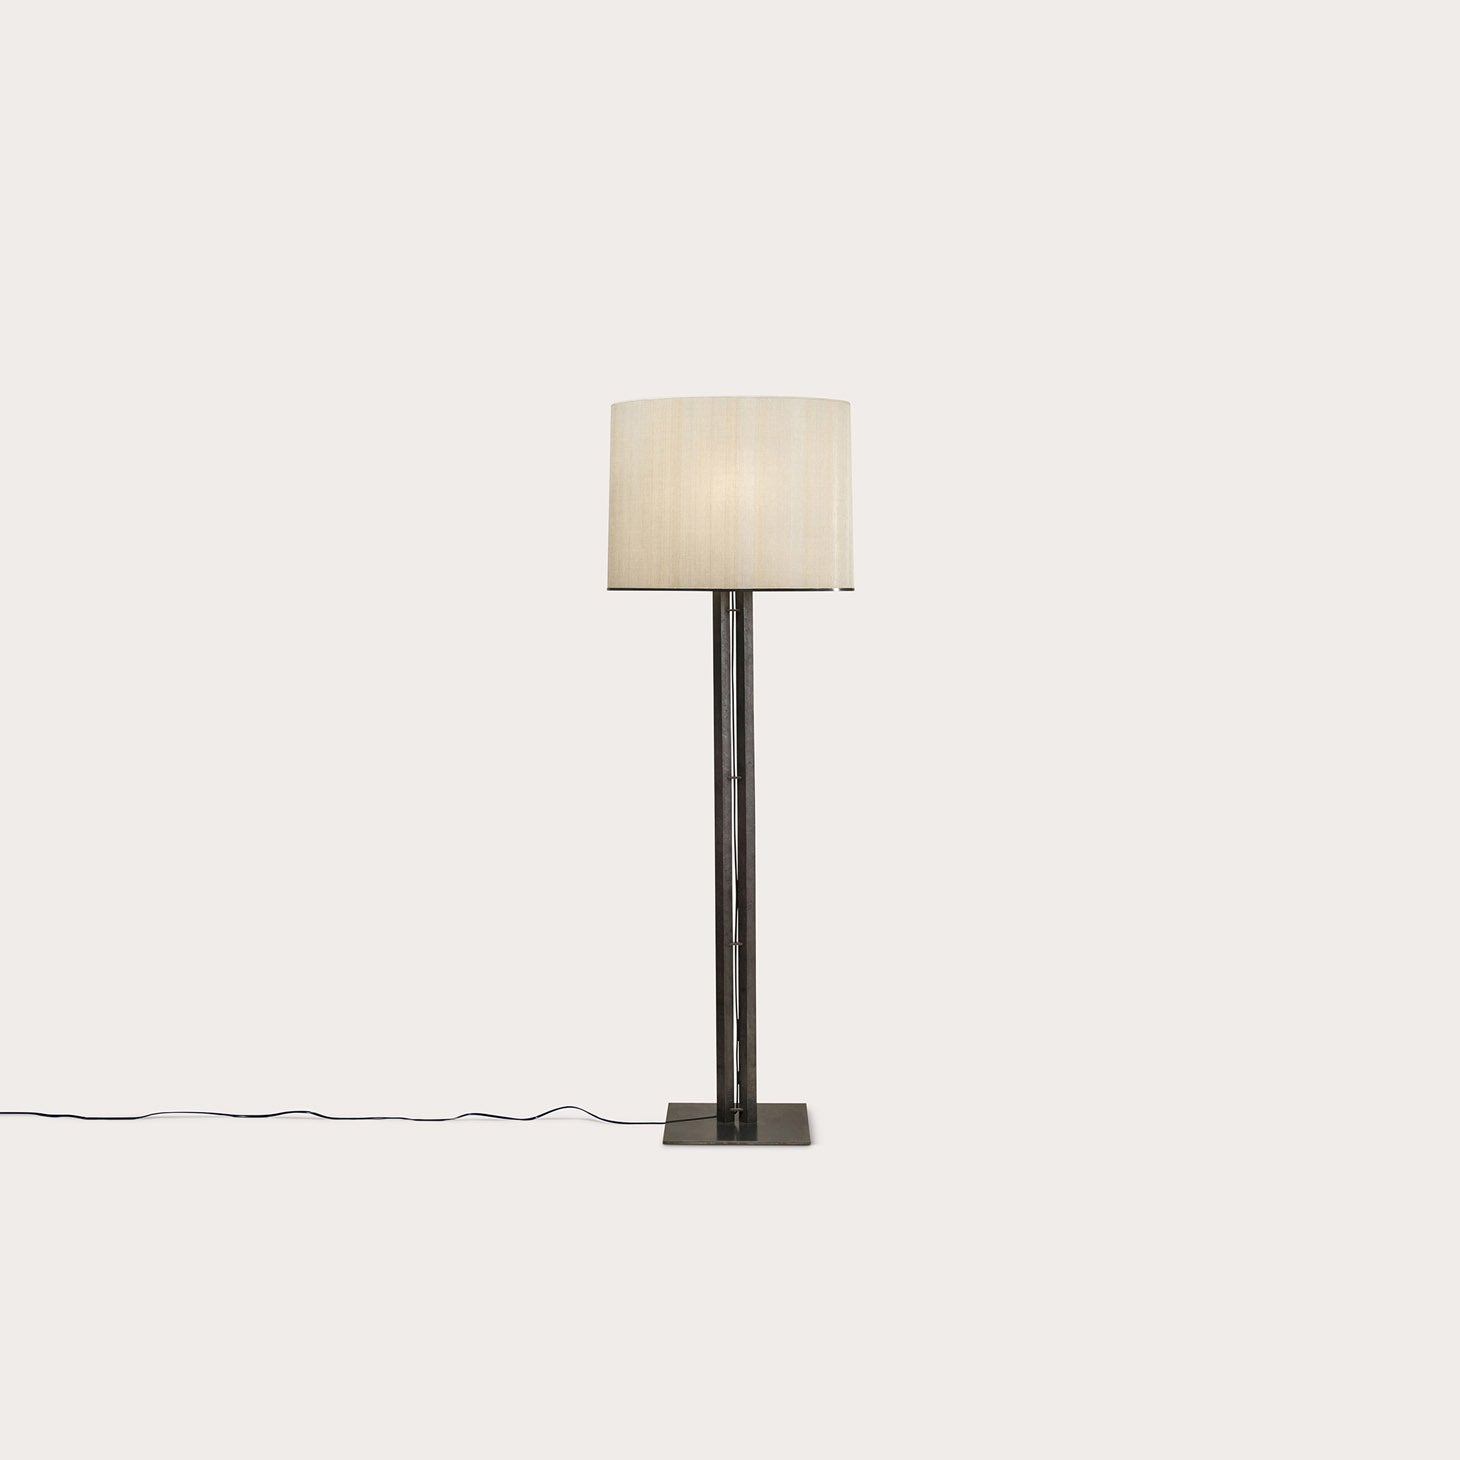 BAKAR Lighting Bruno Moinard Designer Furniture Sku: 773-160-10002